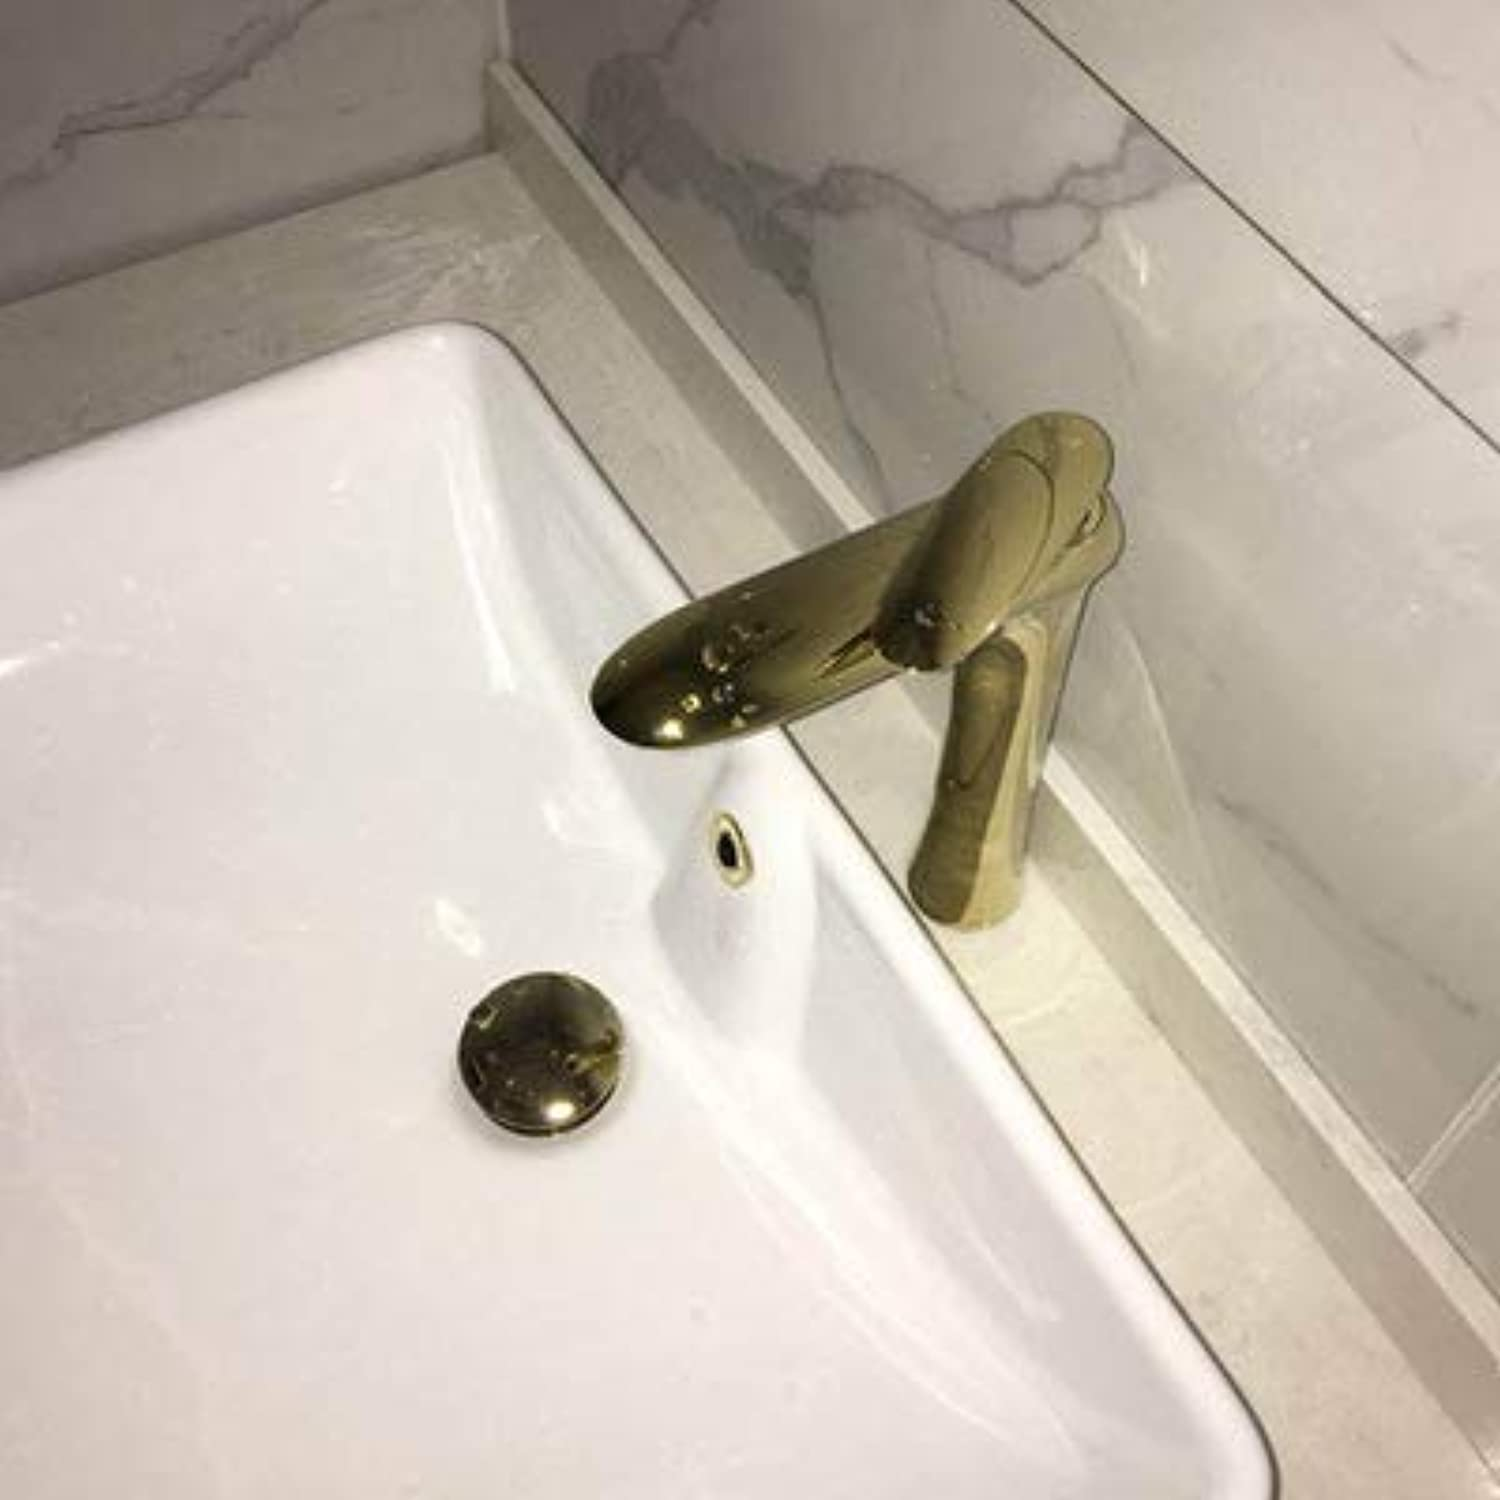 Faucet Bathroom Cabinet Faucet Kitchen wash Basin Basin Single Control hot and Cold Bathroom Faucet gold high Section